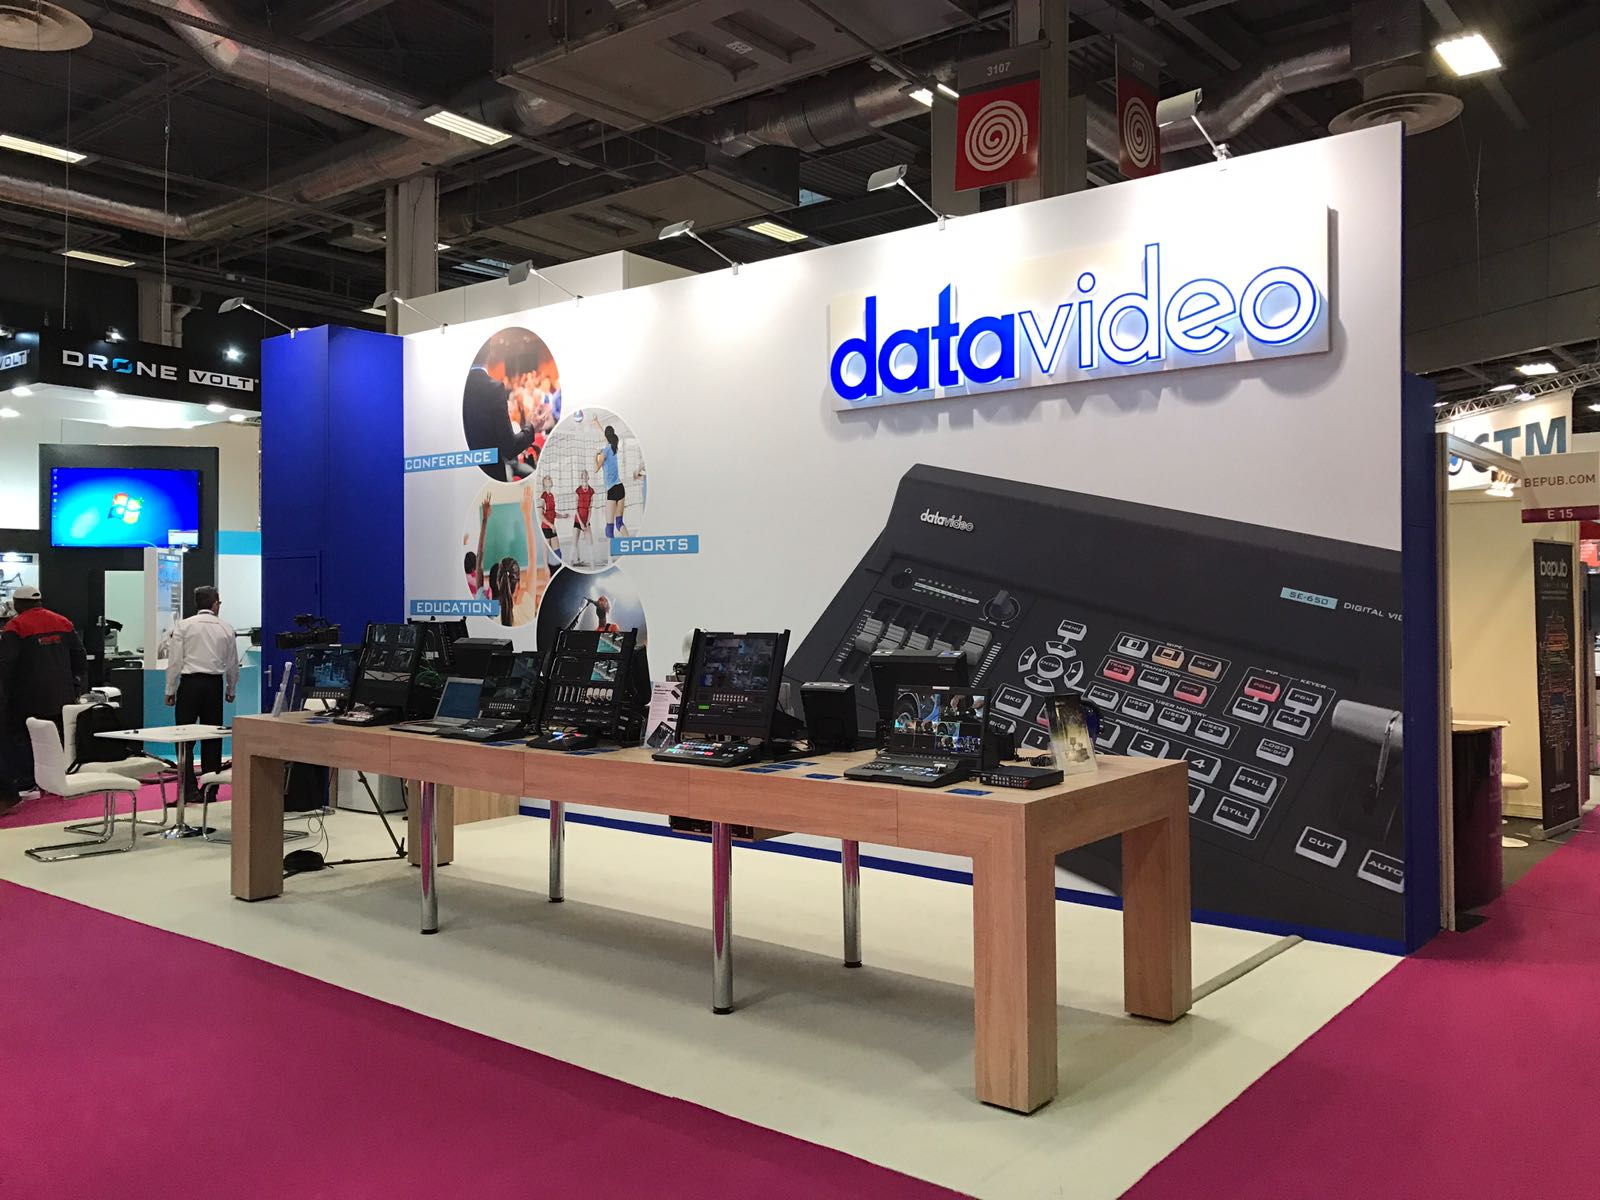 Datavideo exhibits at the annual SATIS Expo in Paris